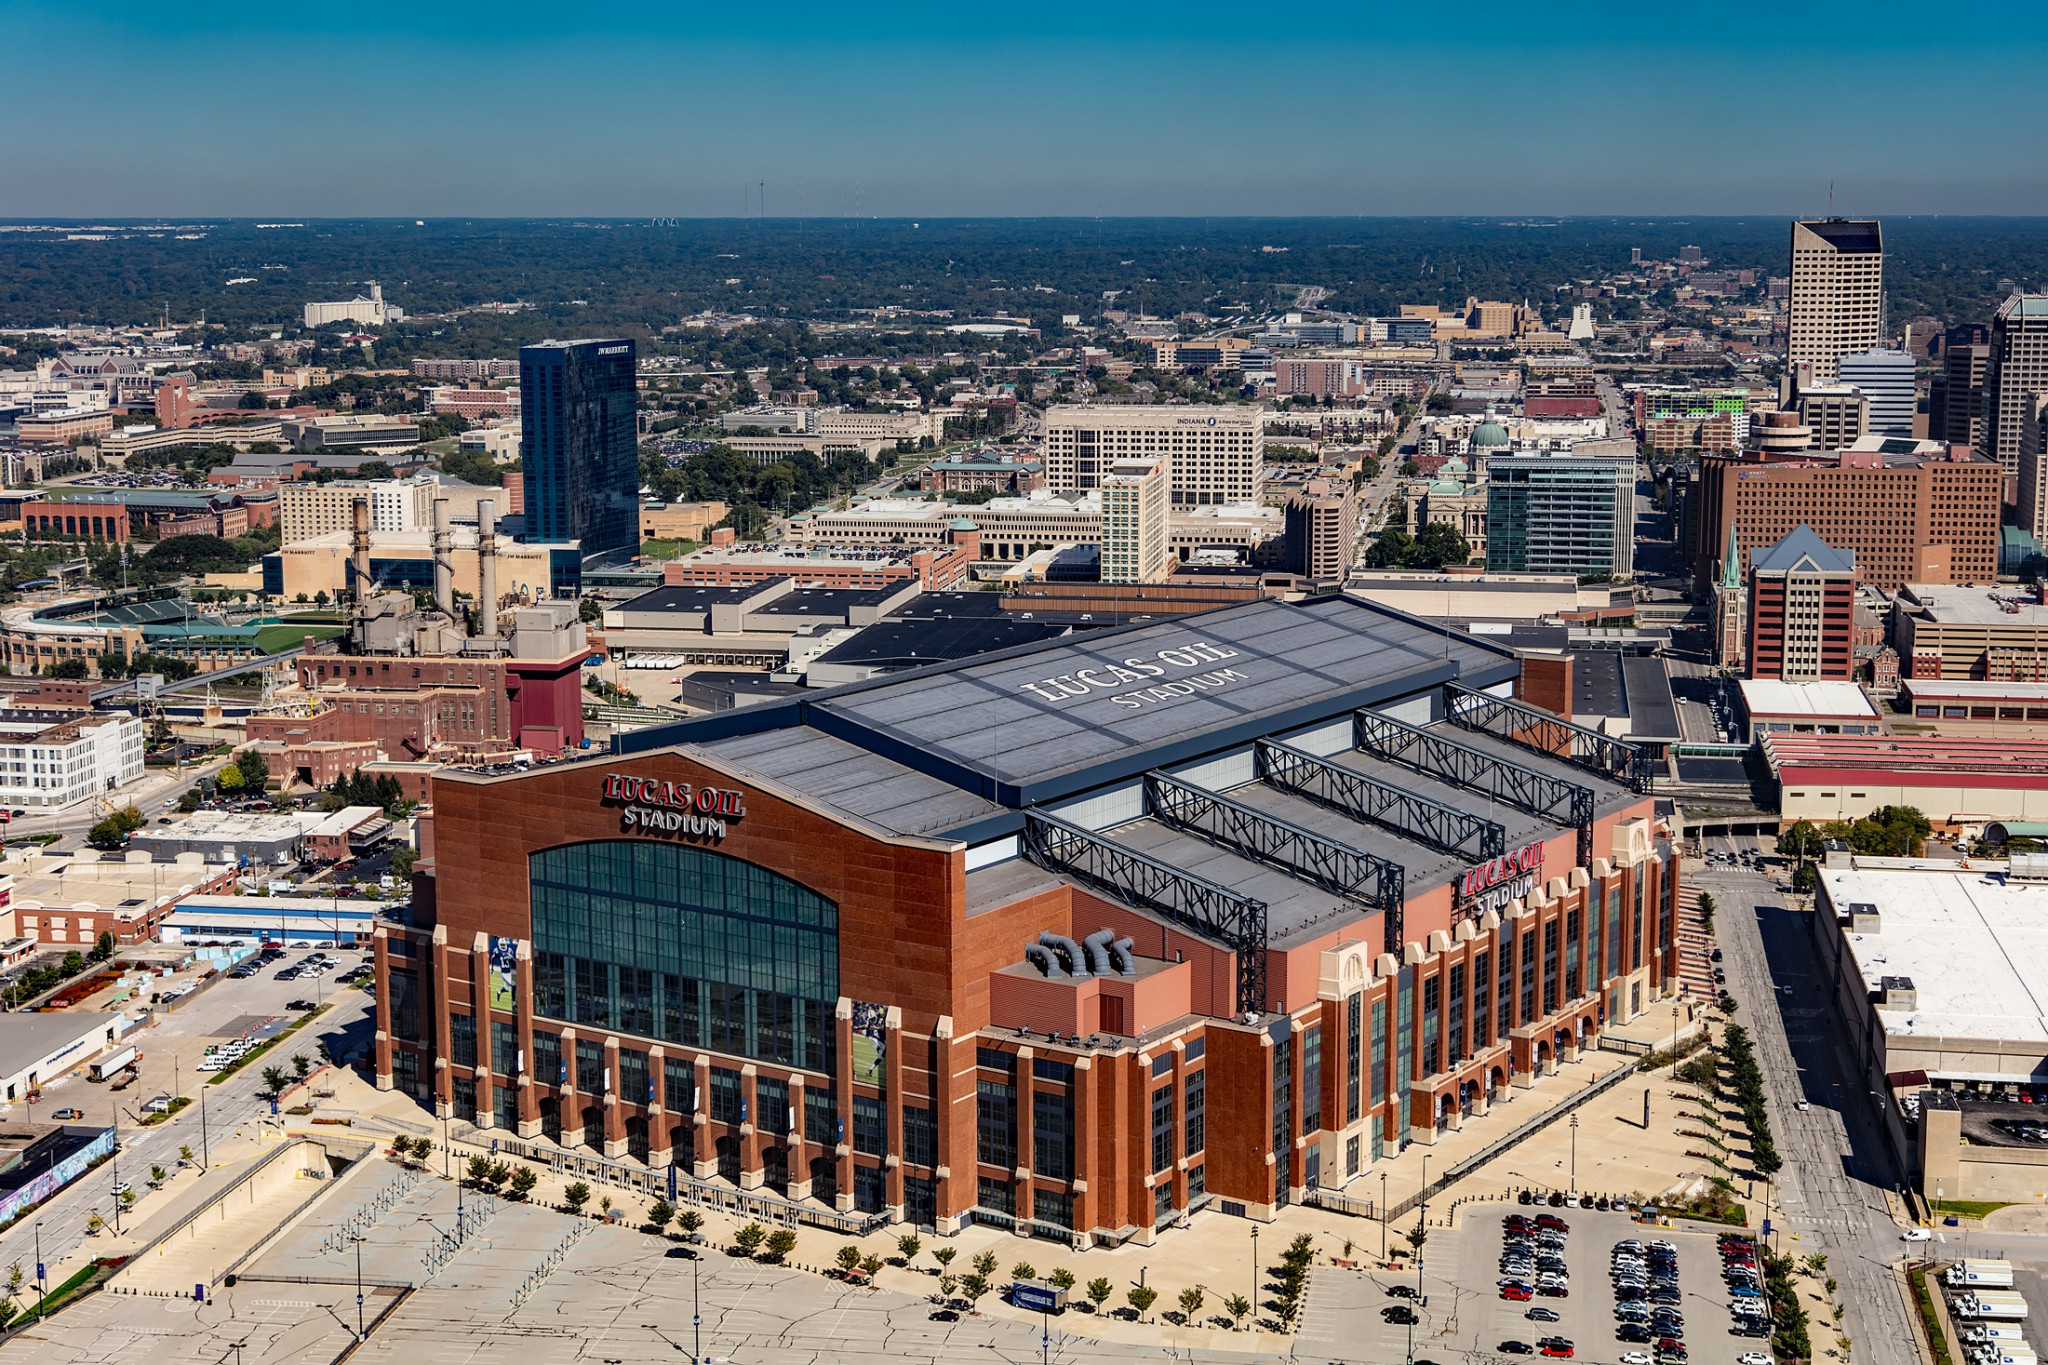 Next year's NCAA Final Four tournament is set to take place at Lucas Oil Stadium in Indianapolis ©Wikipedia